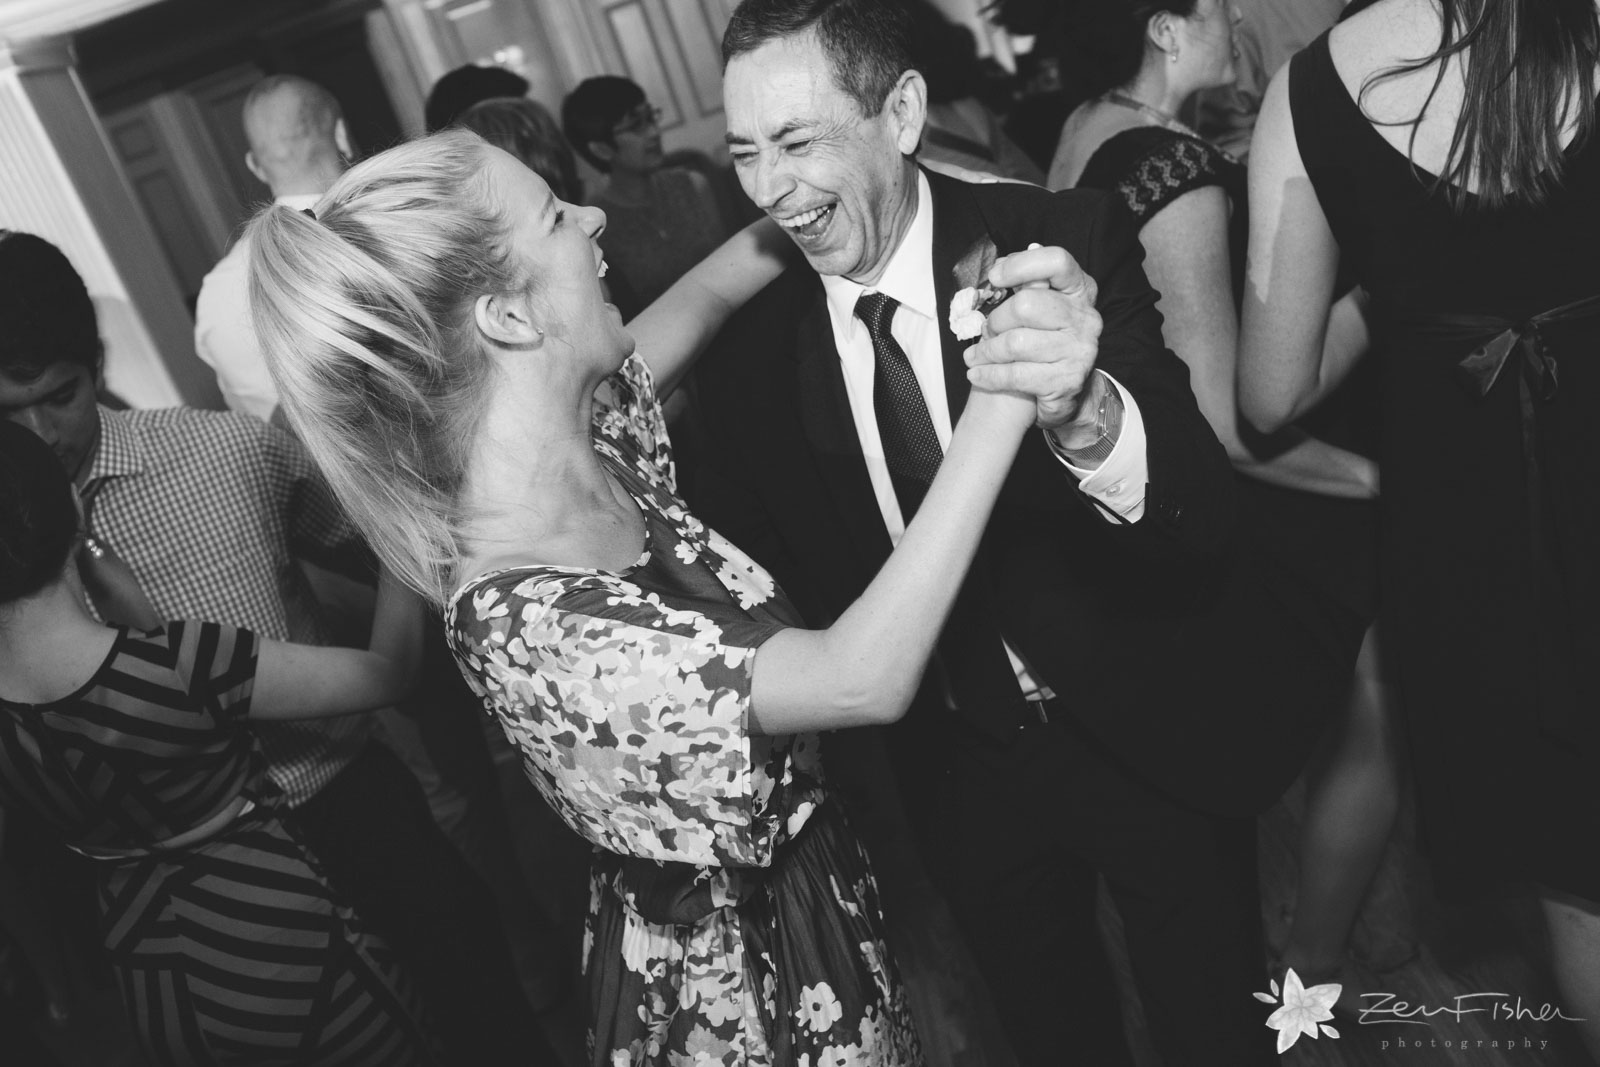 Guests having fun dancing on the dance floor, in black and white.